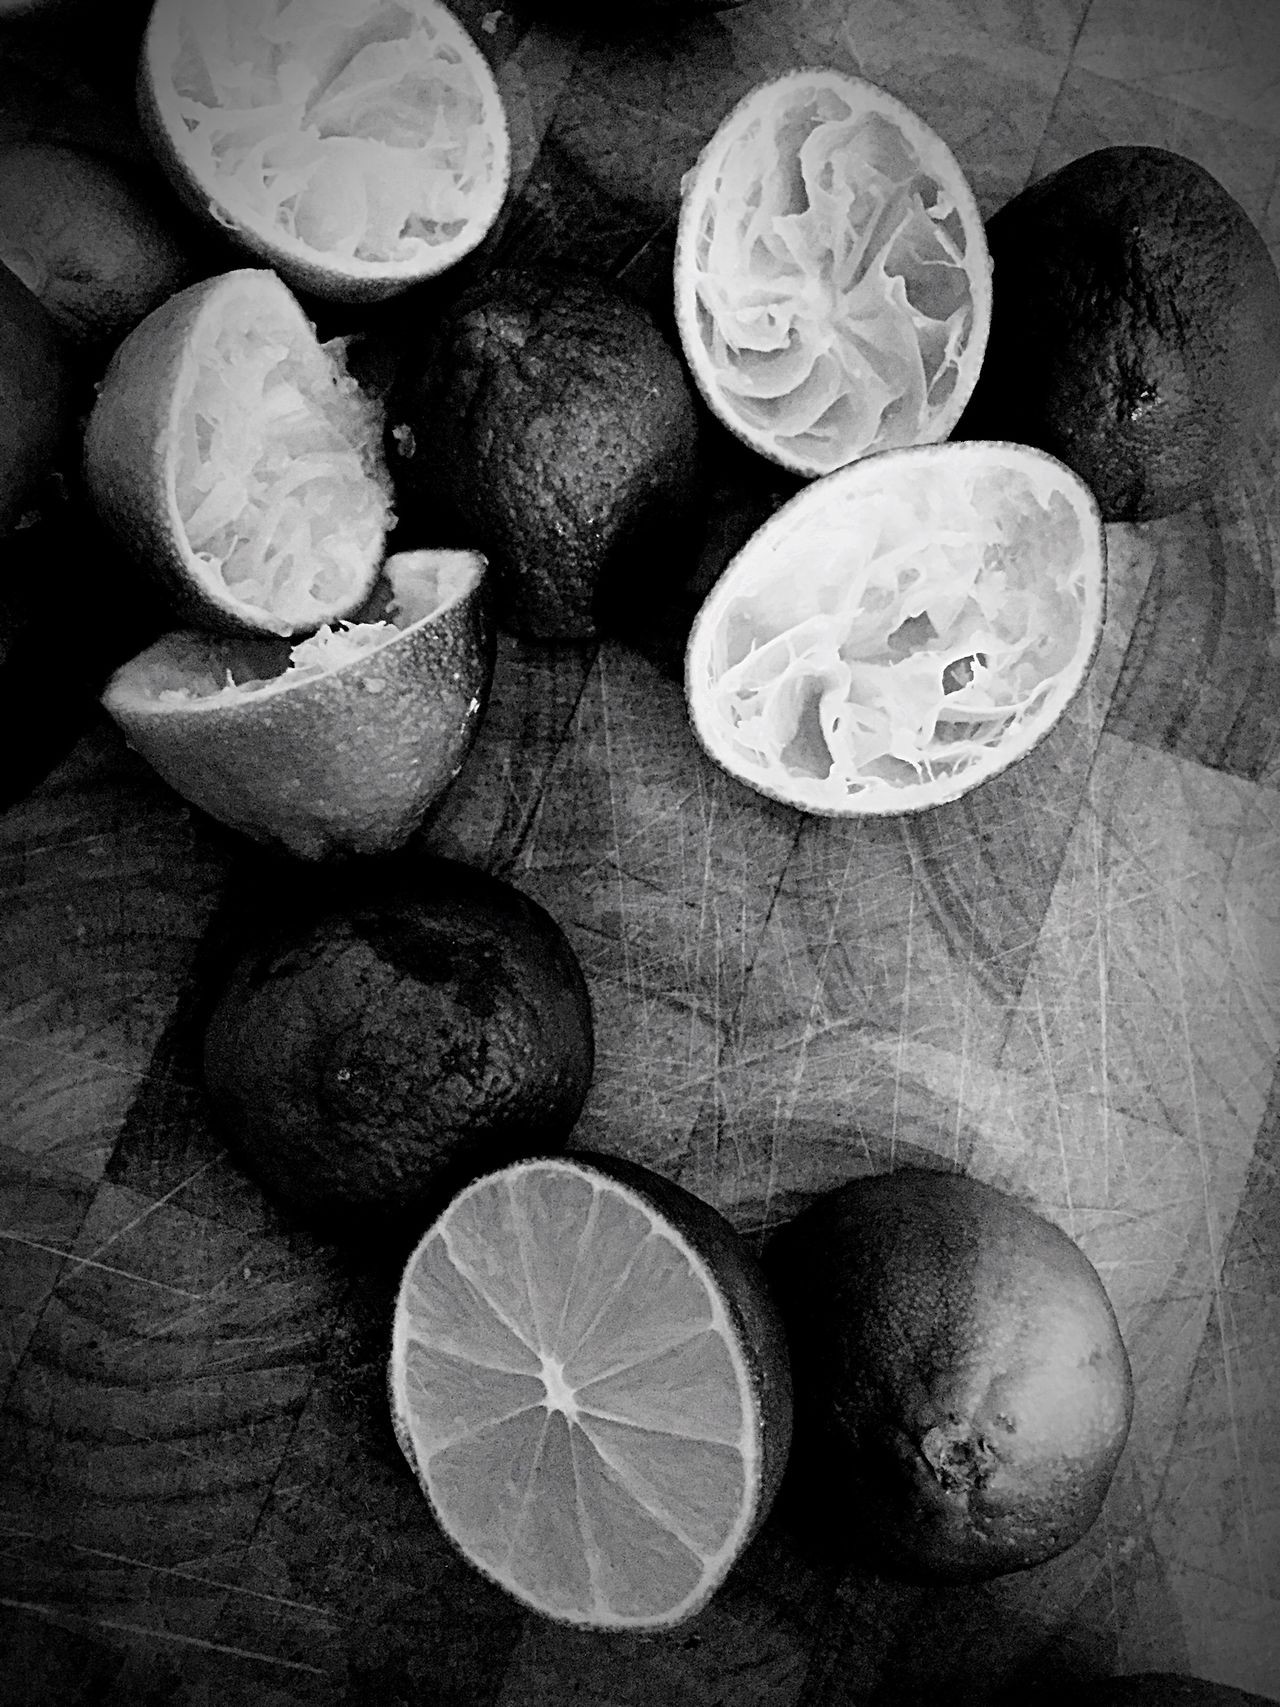 Food High Angle View Cross Section Food And Drink Vertical No People Healthy Eating Freshness Coin Indoors  Day Monochrome Photography